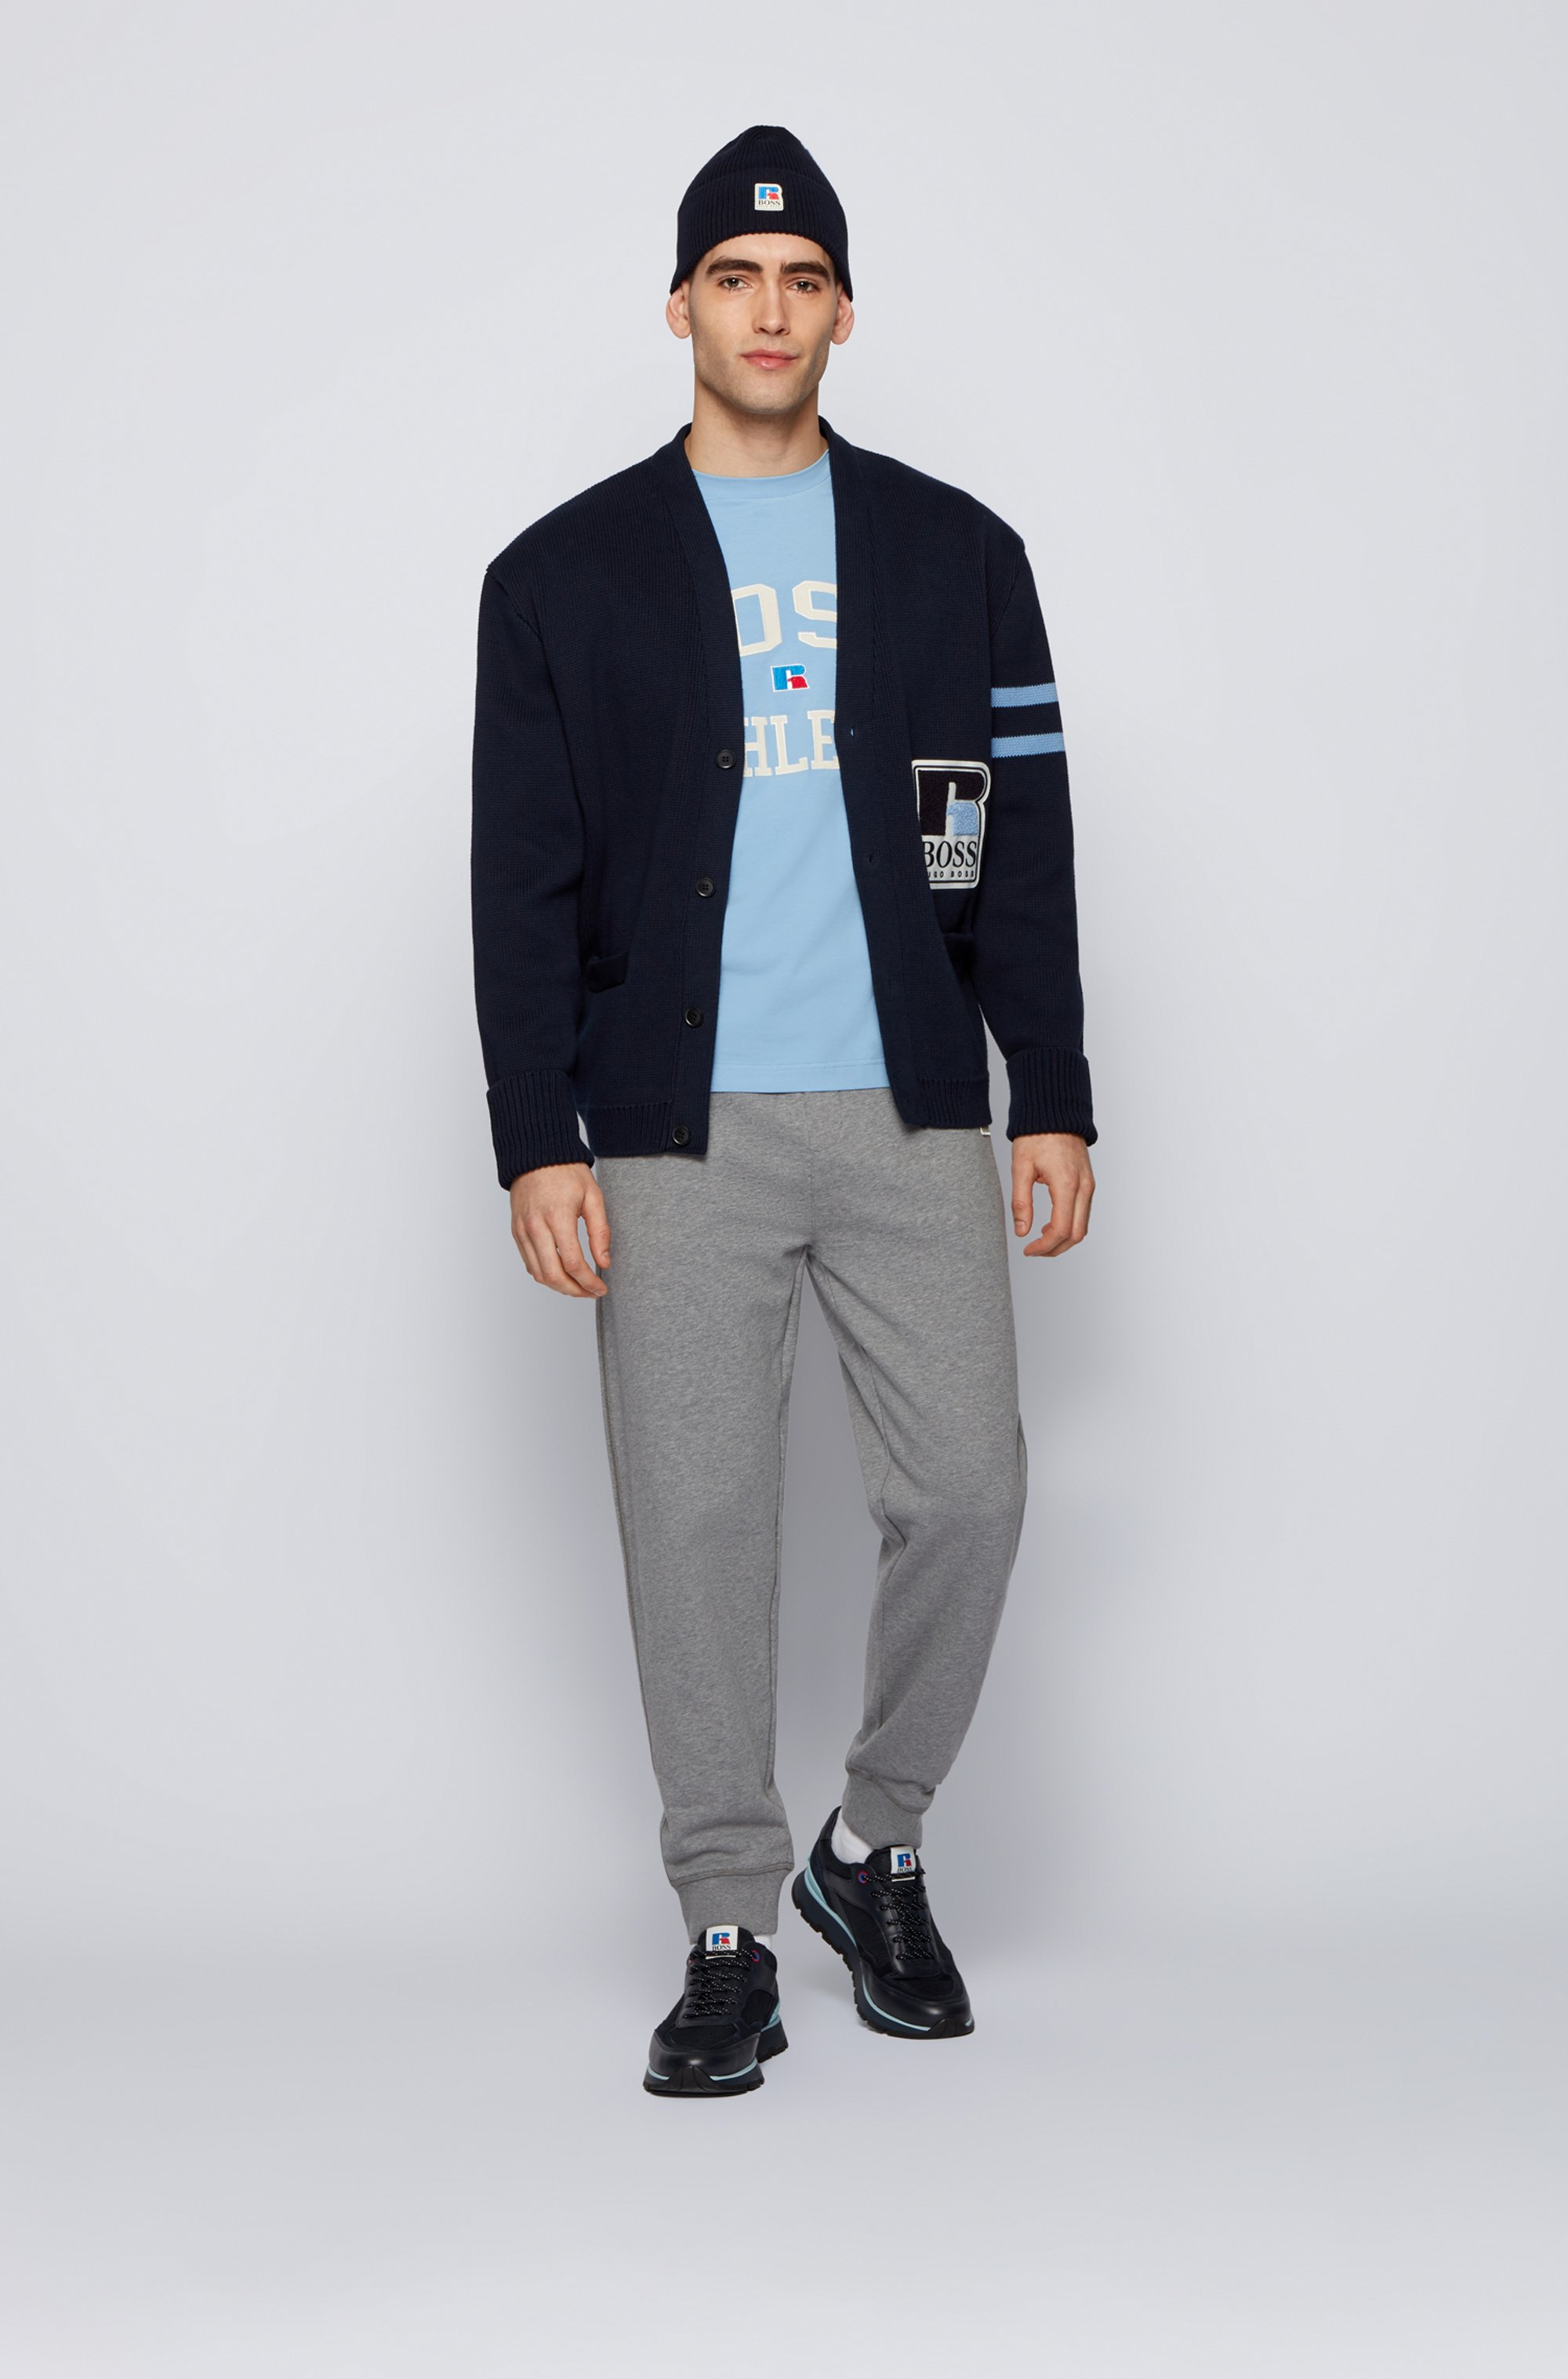 Unisex relaxed-fit cardigan in cotton with exclusive logo